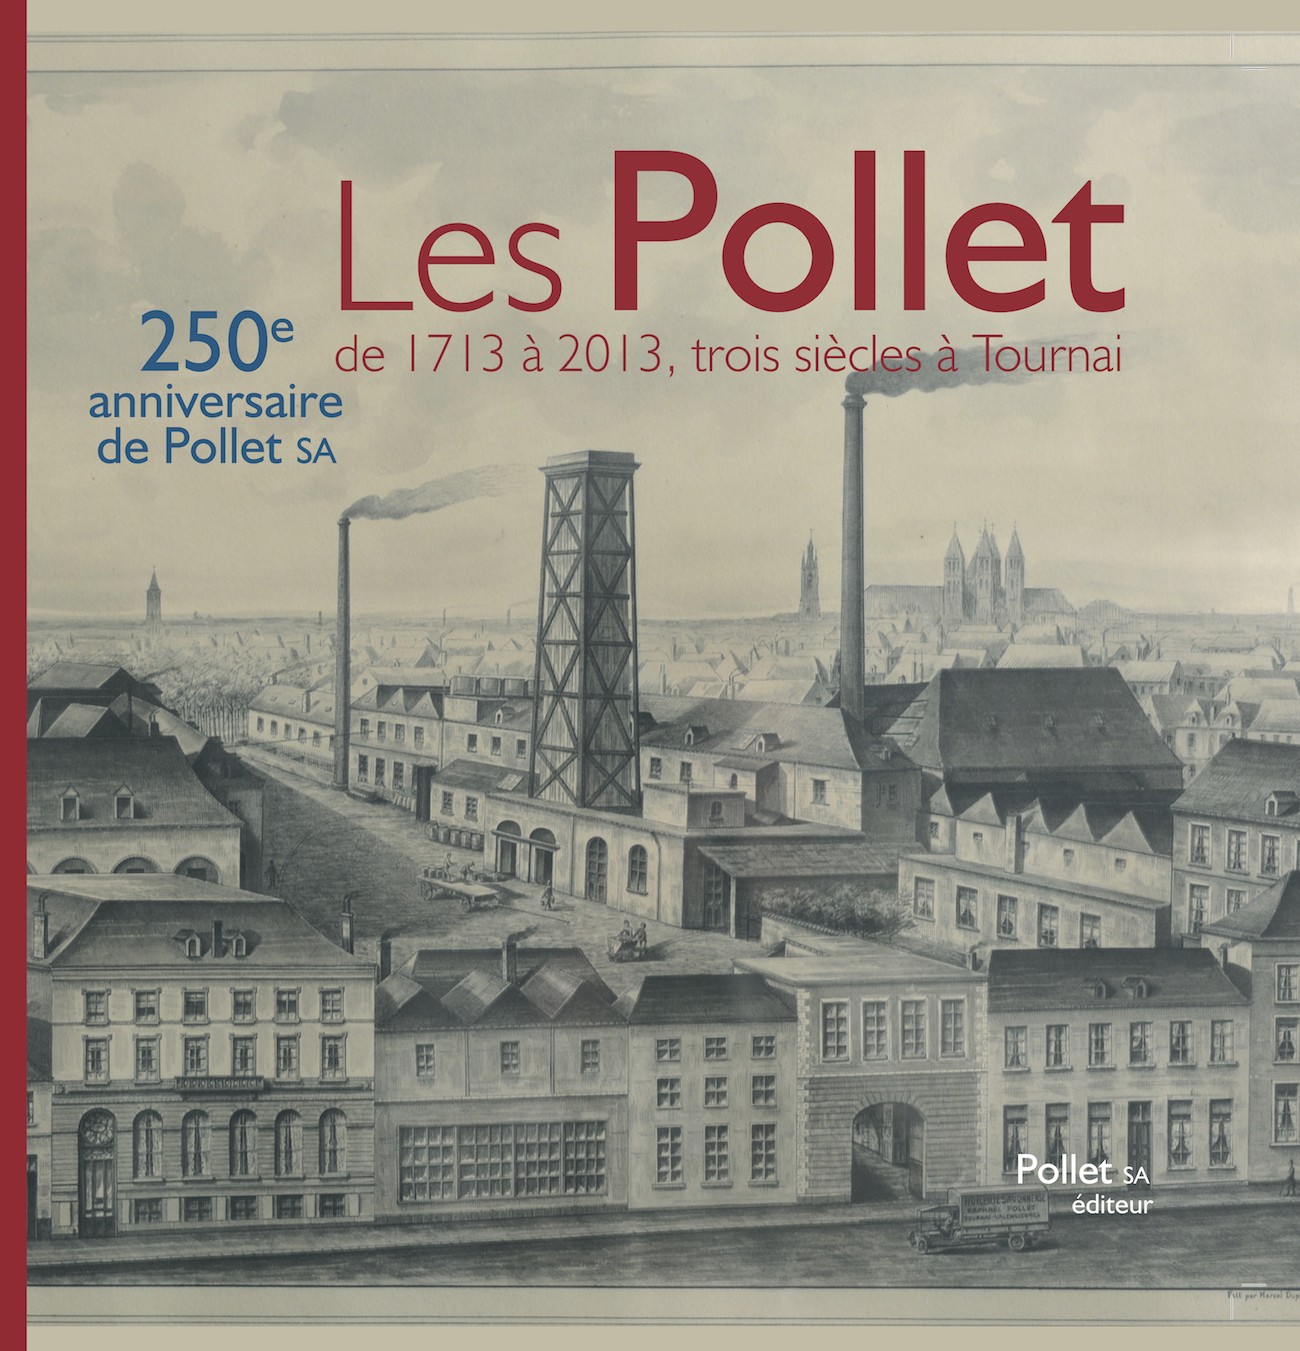 Pollet COUV